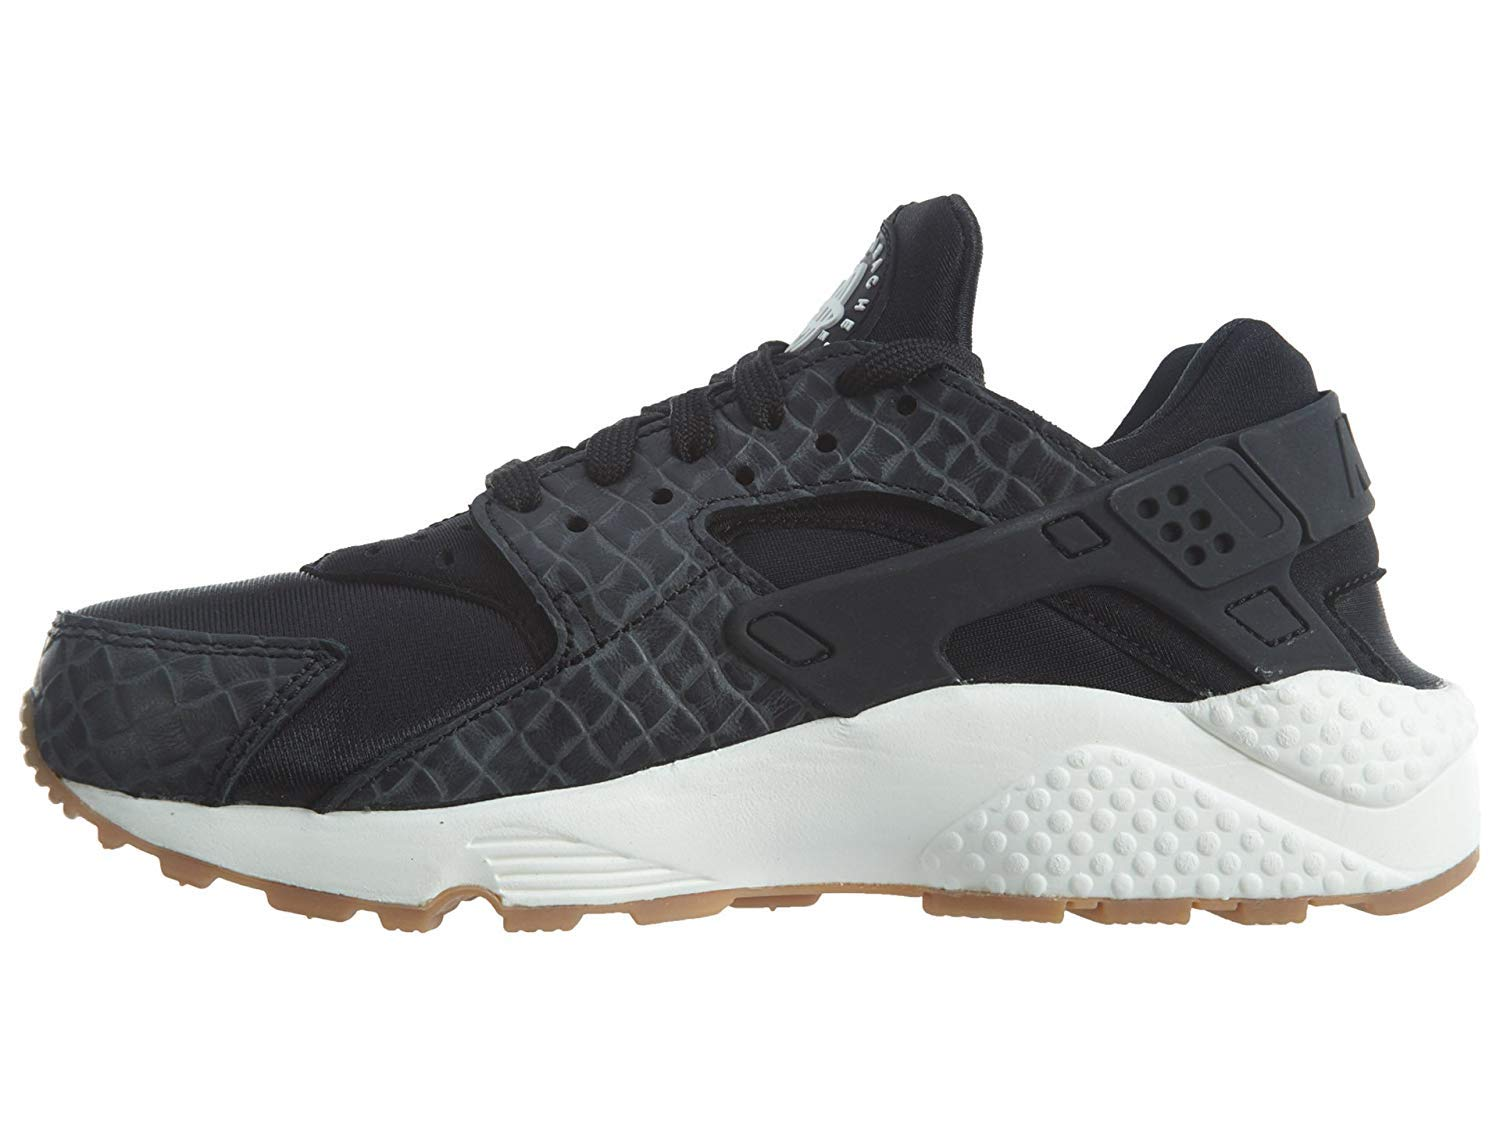 88a90fbad3c1 Amazon.com  Nike Men s Air Huarache Running Shoe  Nike  Shoes